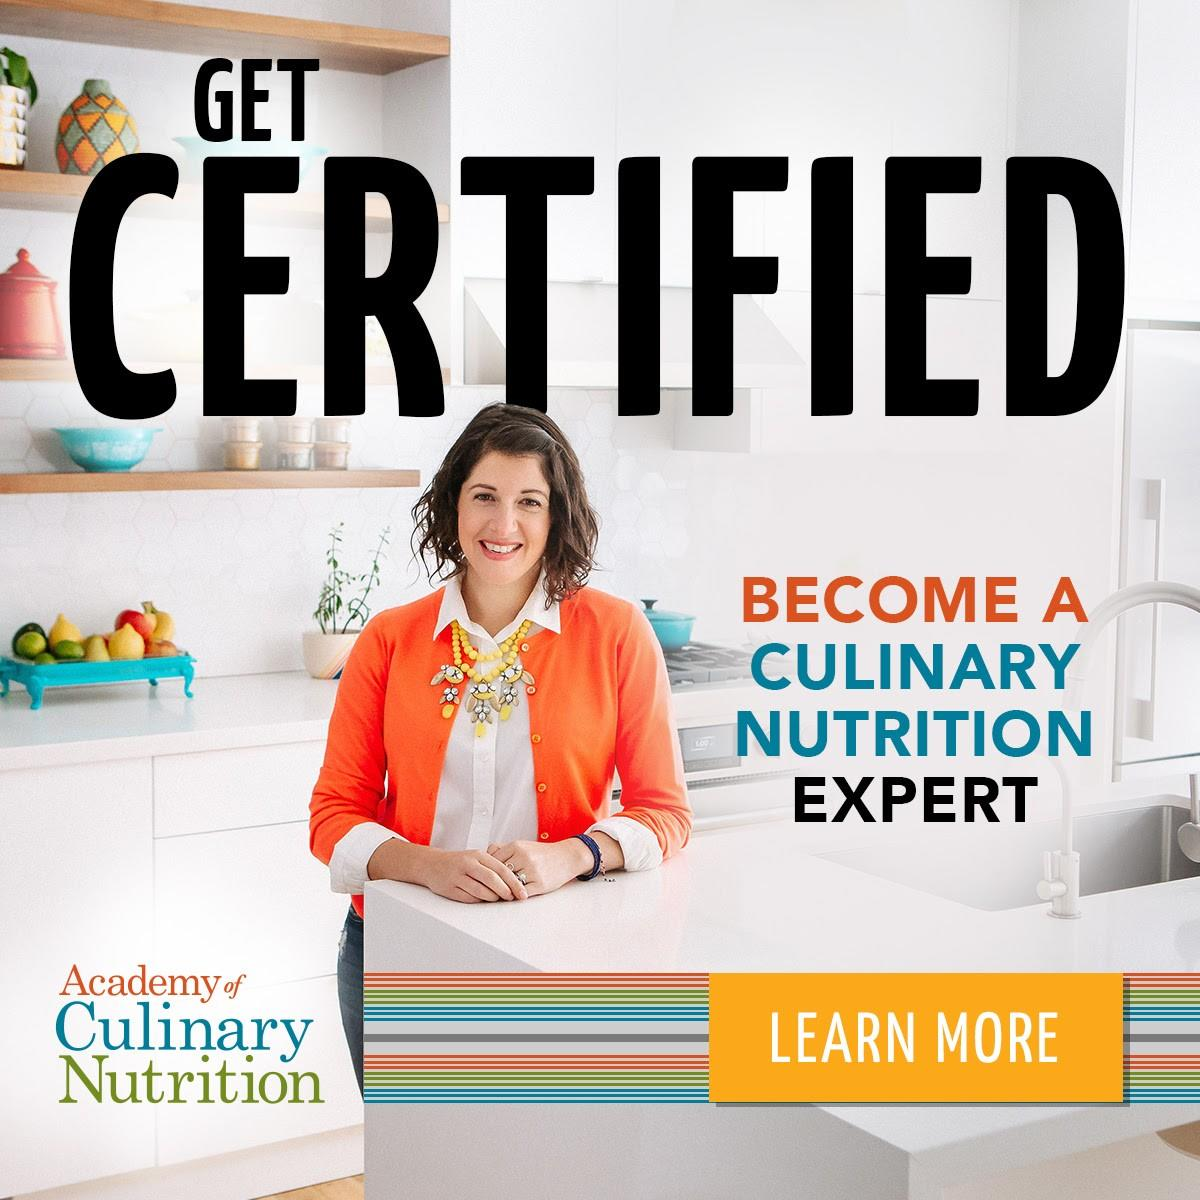 Click here for a free mini training with the Academy of Culinary Nutrition